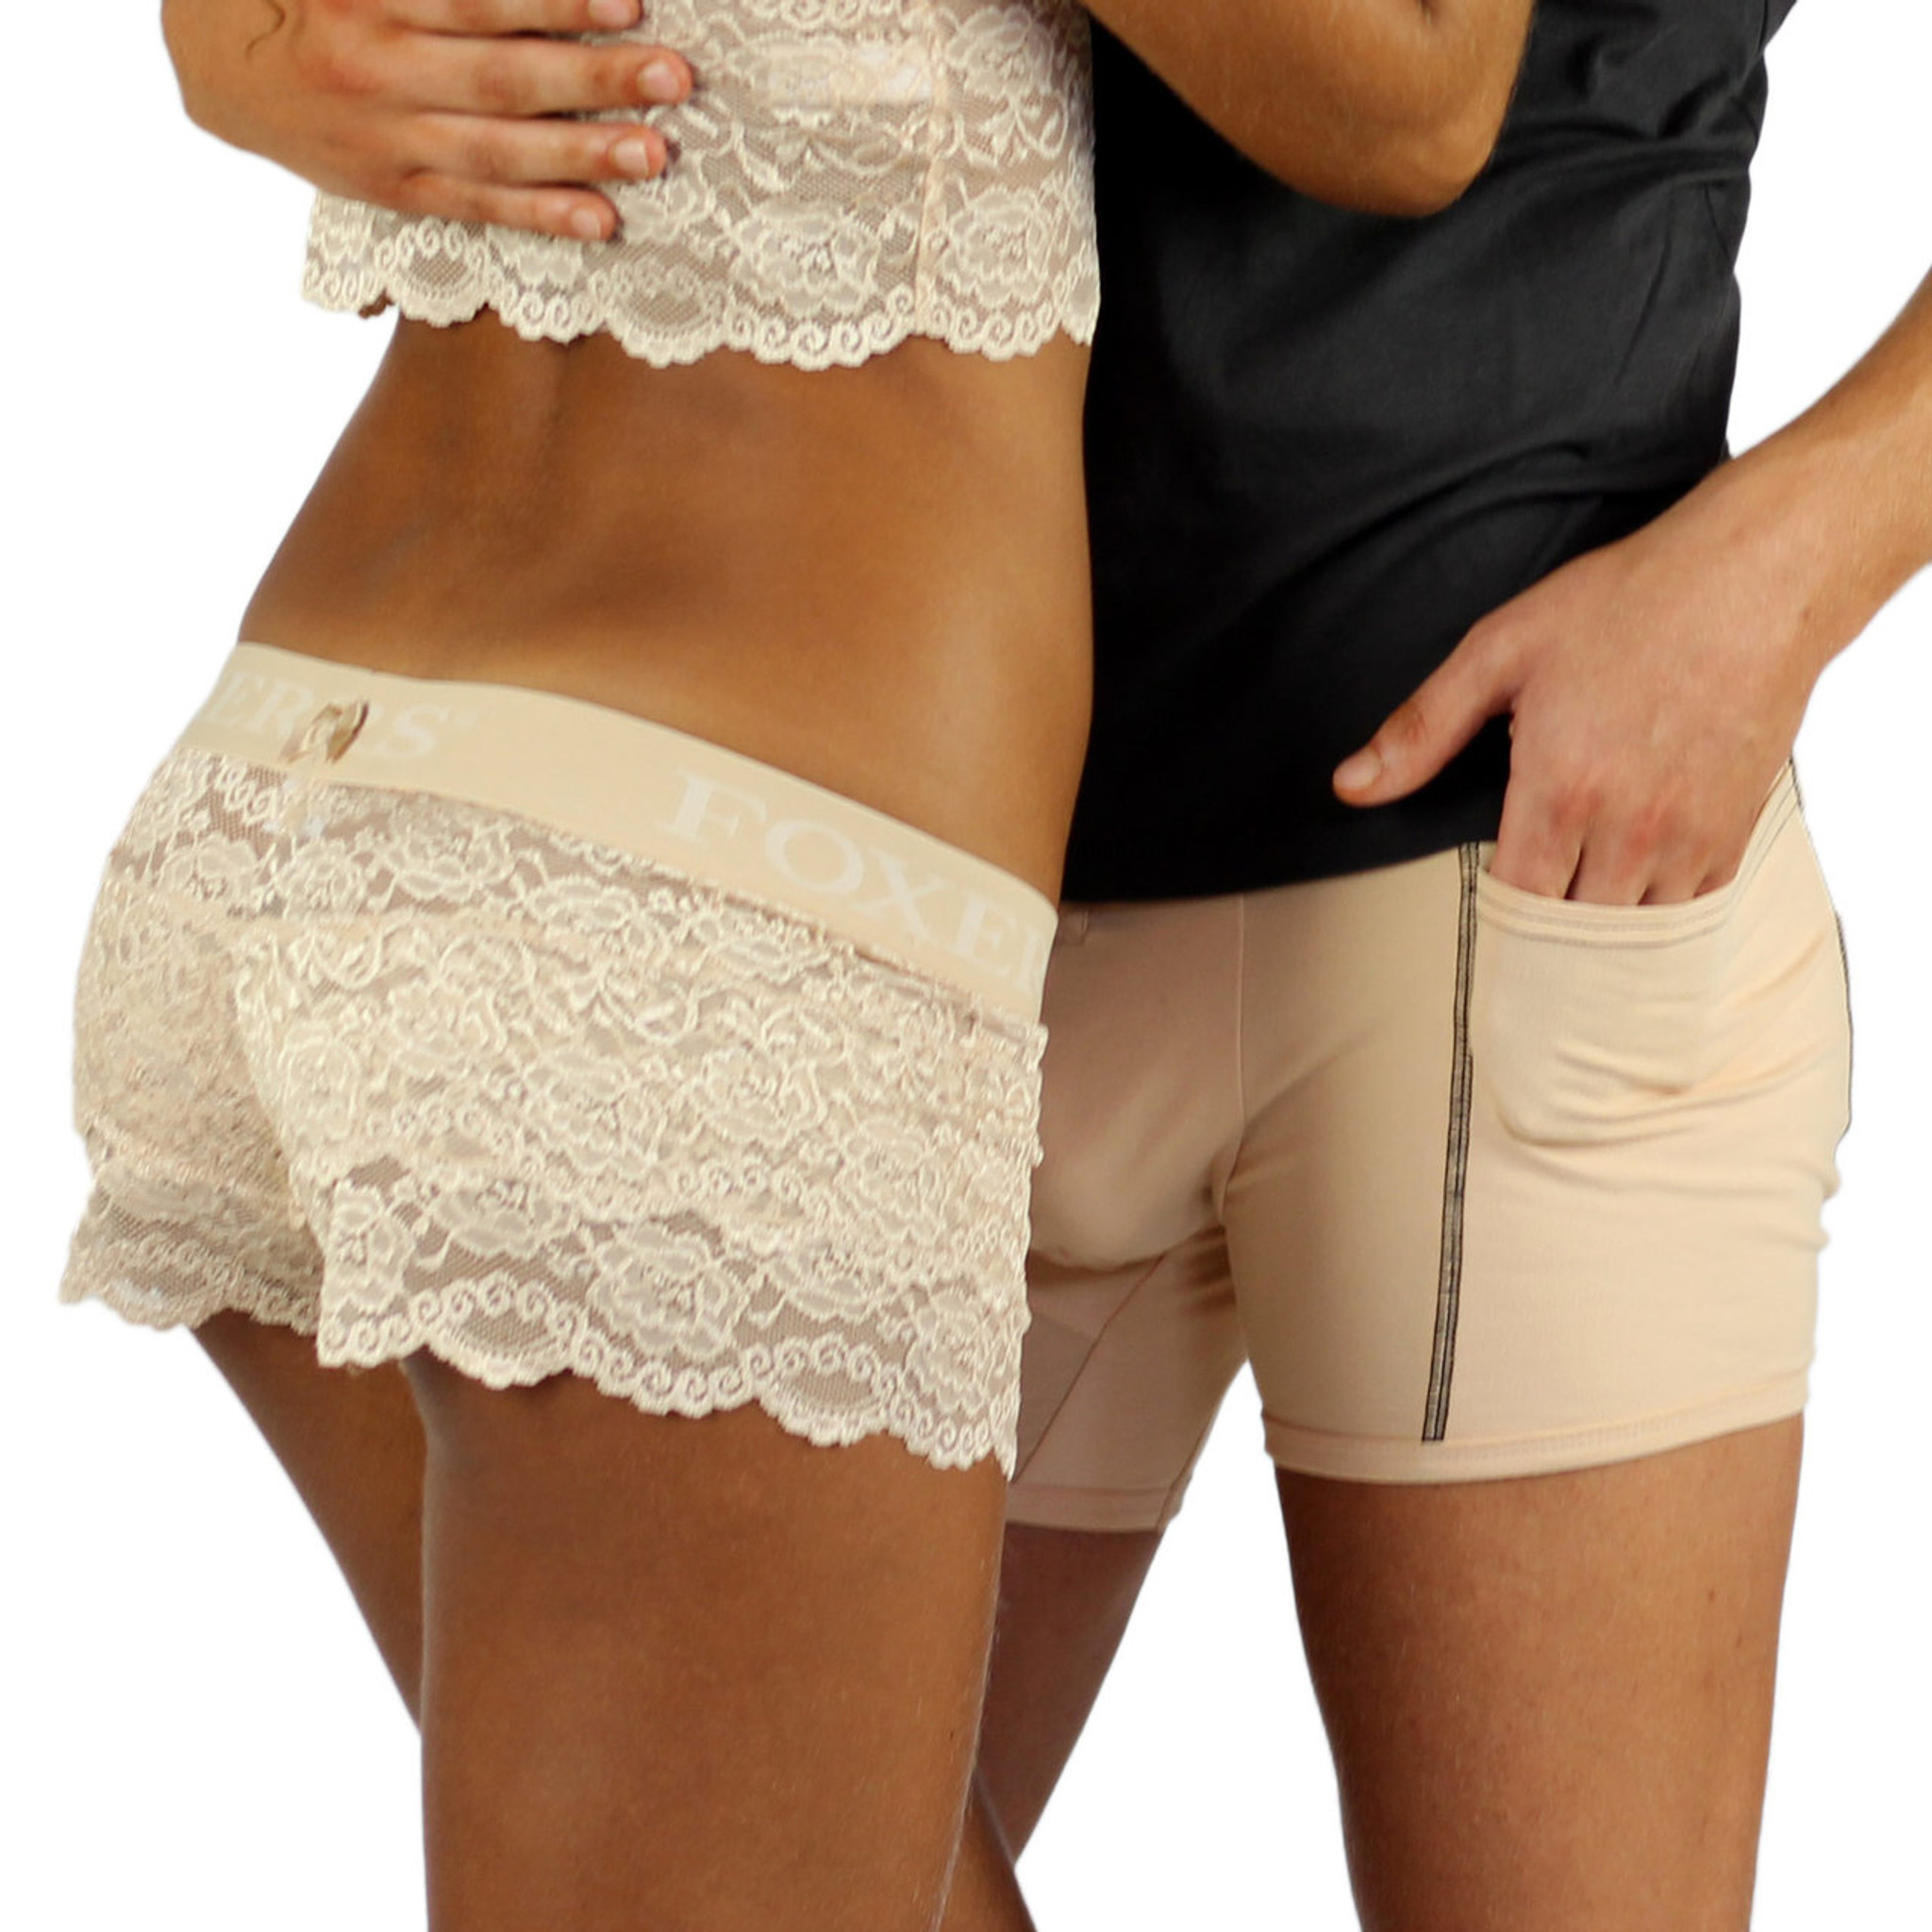 ... Matching Men s Boxers and Women s Lace Boxers from Sahara Oasis ... 132c20d1e0ef